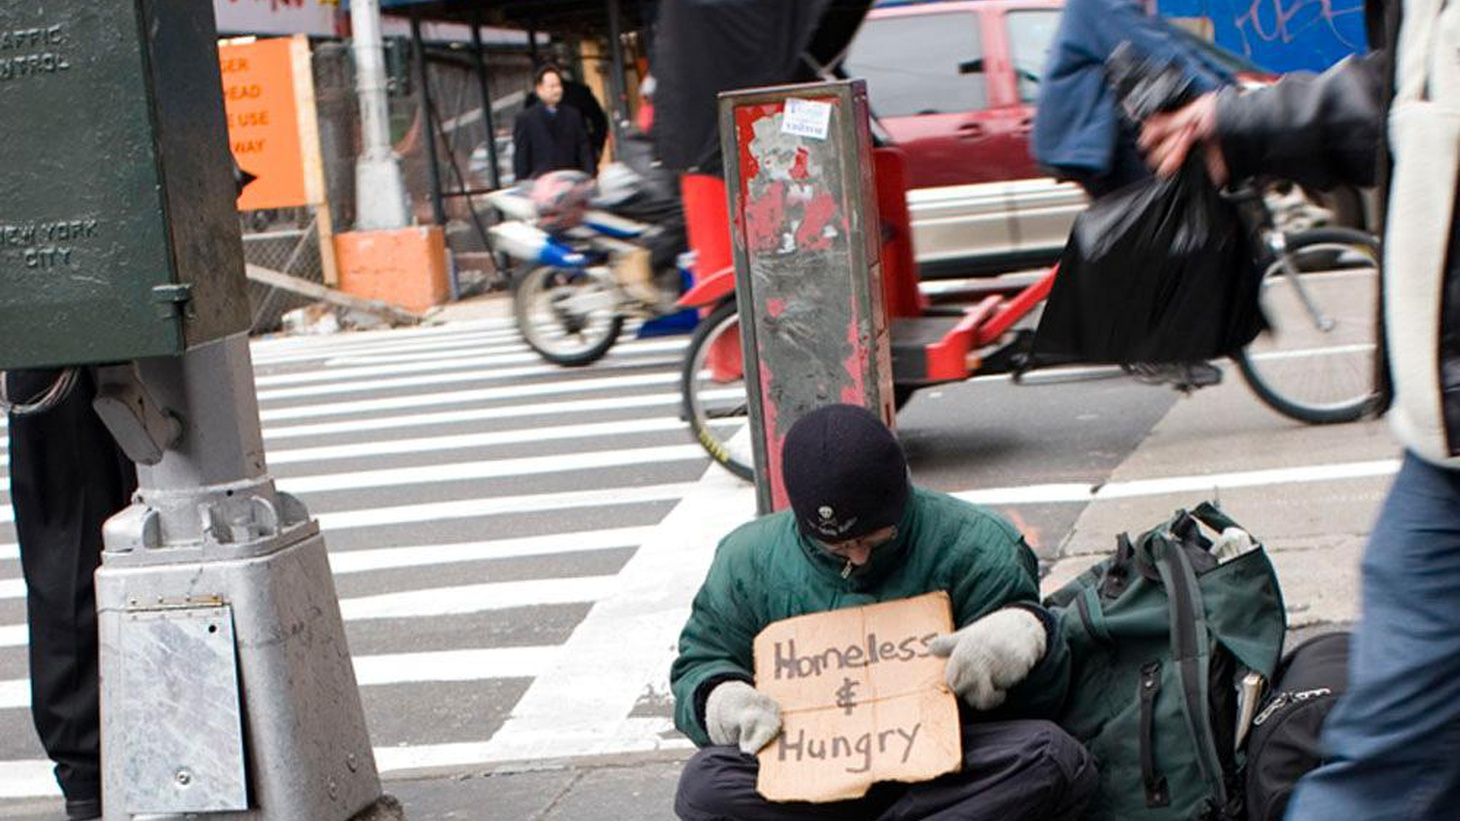 LA's growing homeless population makes feeding people who live on the streets more urgent than ever, but a backlash has led to a move to restrict feeding in public places.